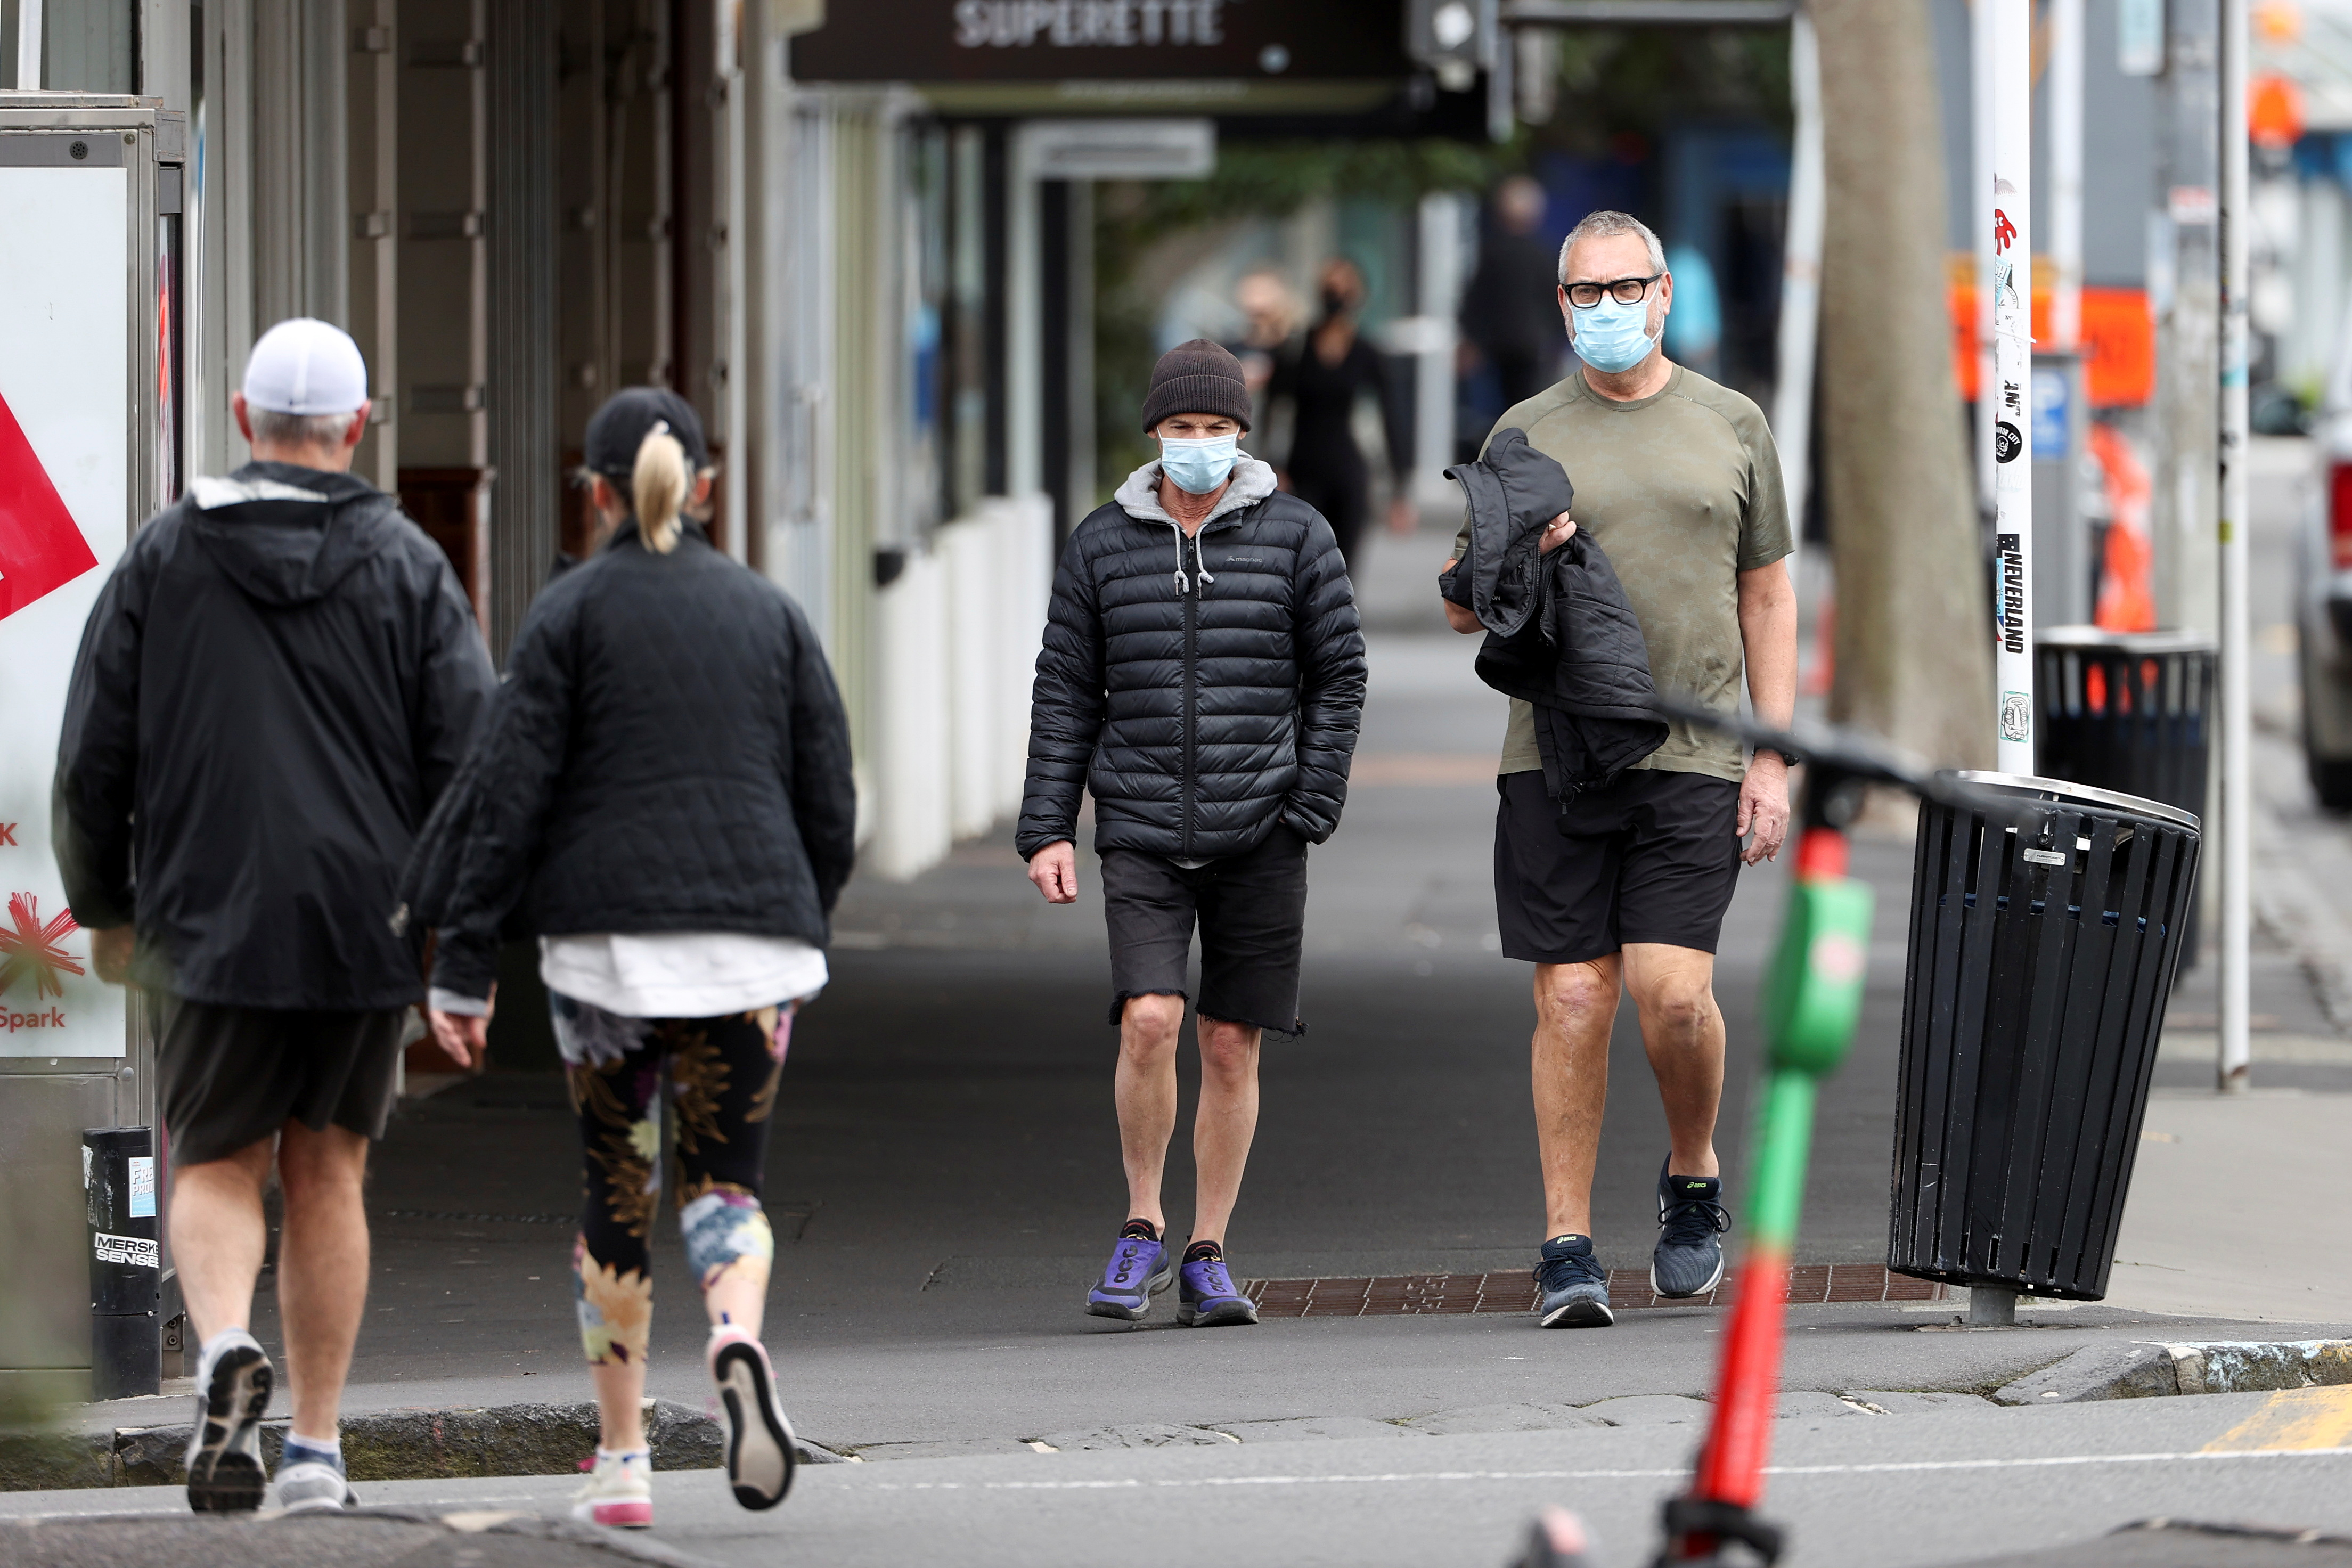 People wear masks as they exercise during a lockdown to curb the spread of a coronavirus disease (COVID-19) outbreak, in Auckland, New Zealand, August 26, 2021.  REUTERS/Fiona Goodall